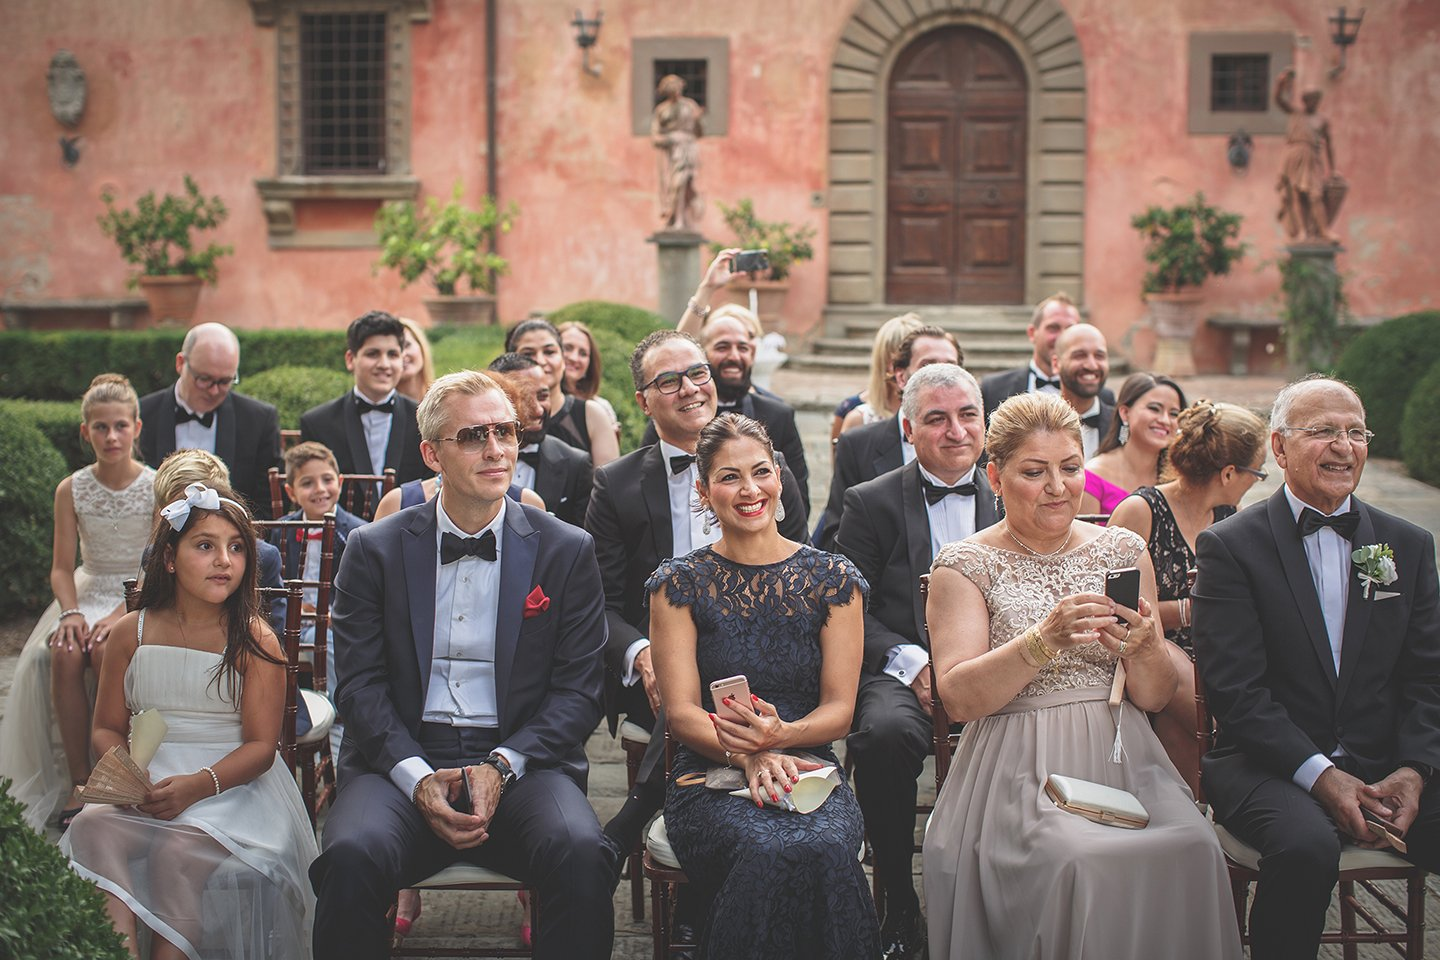 guests-outdoor-blessing-wedding-ceremony-Vignamaggio-Tuscany-